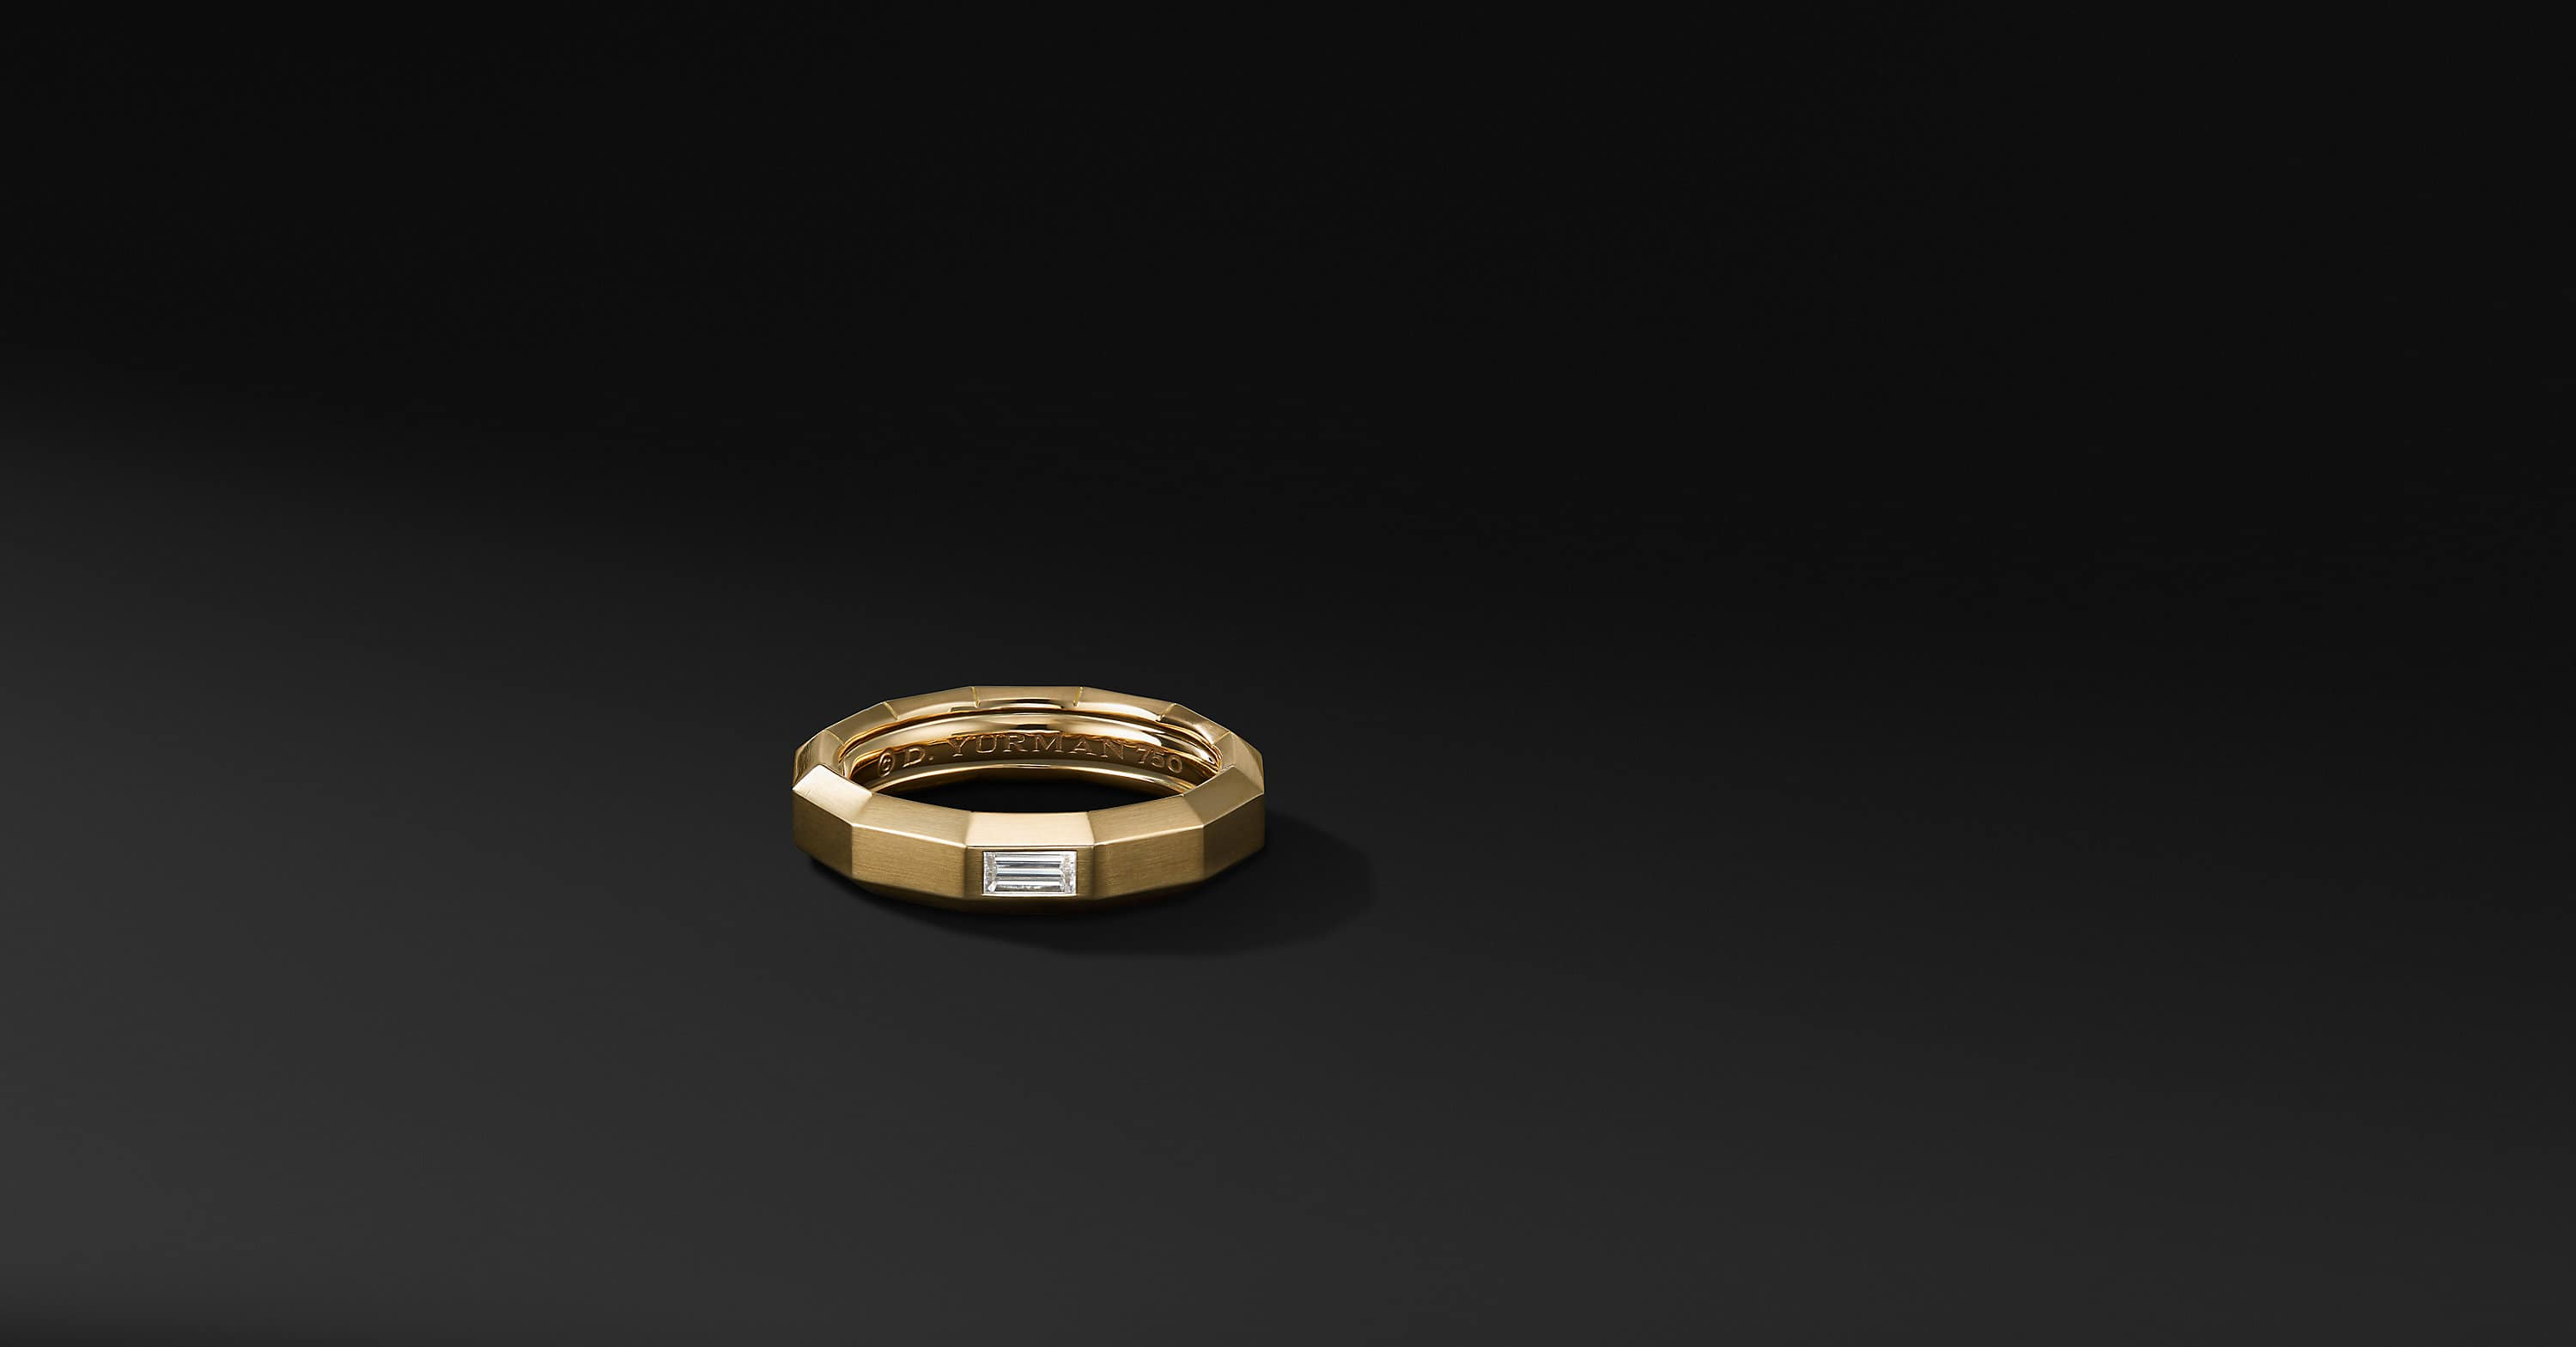 Faceted Band Ring in 18K Yellow Gold with Diamonds, 6mm